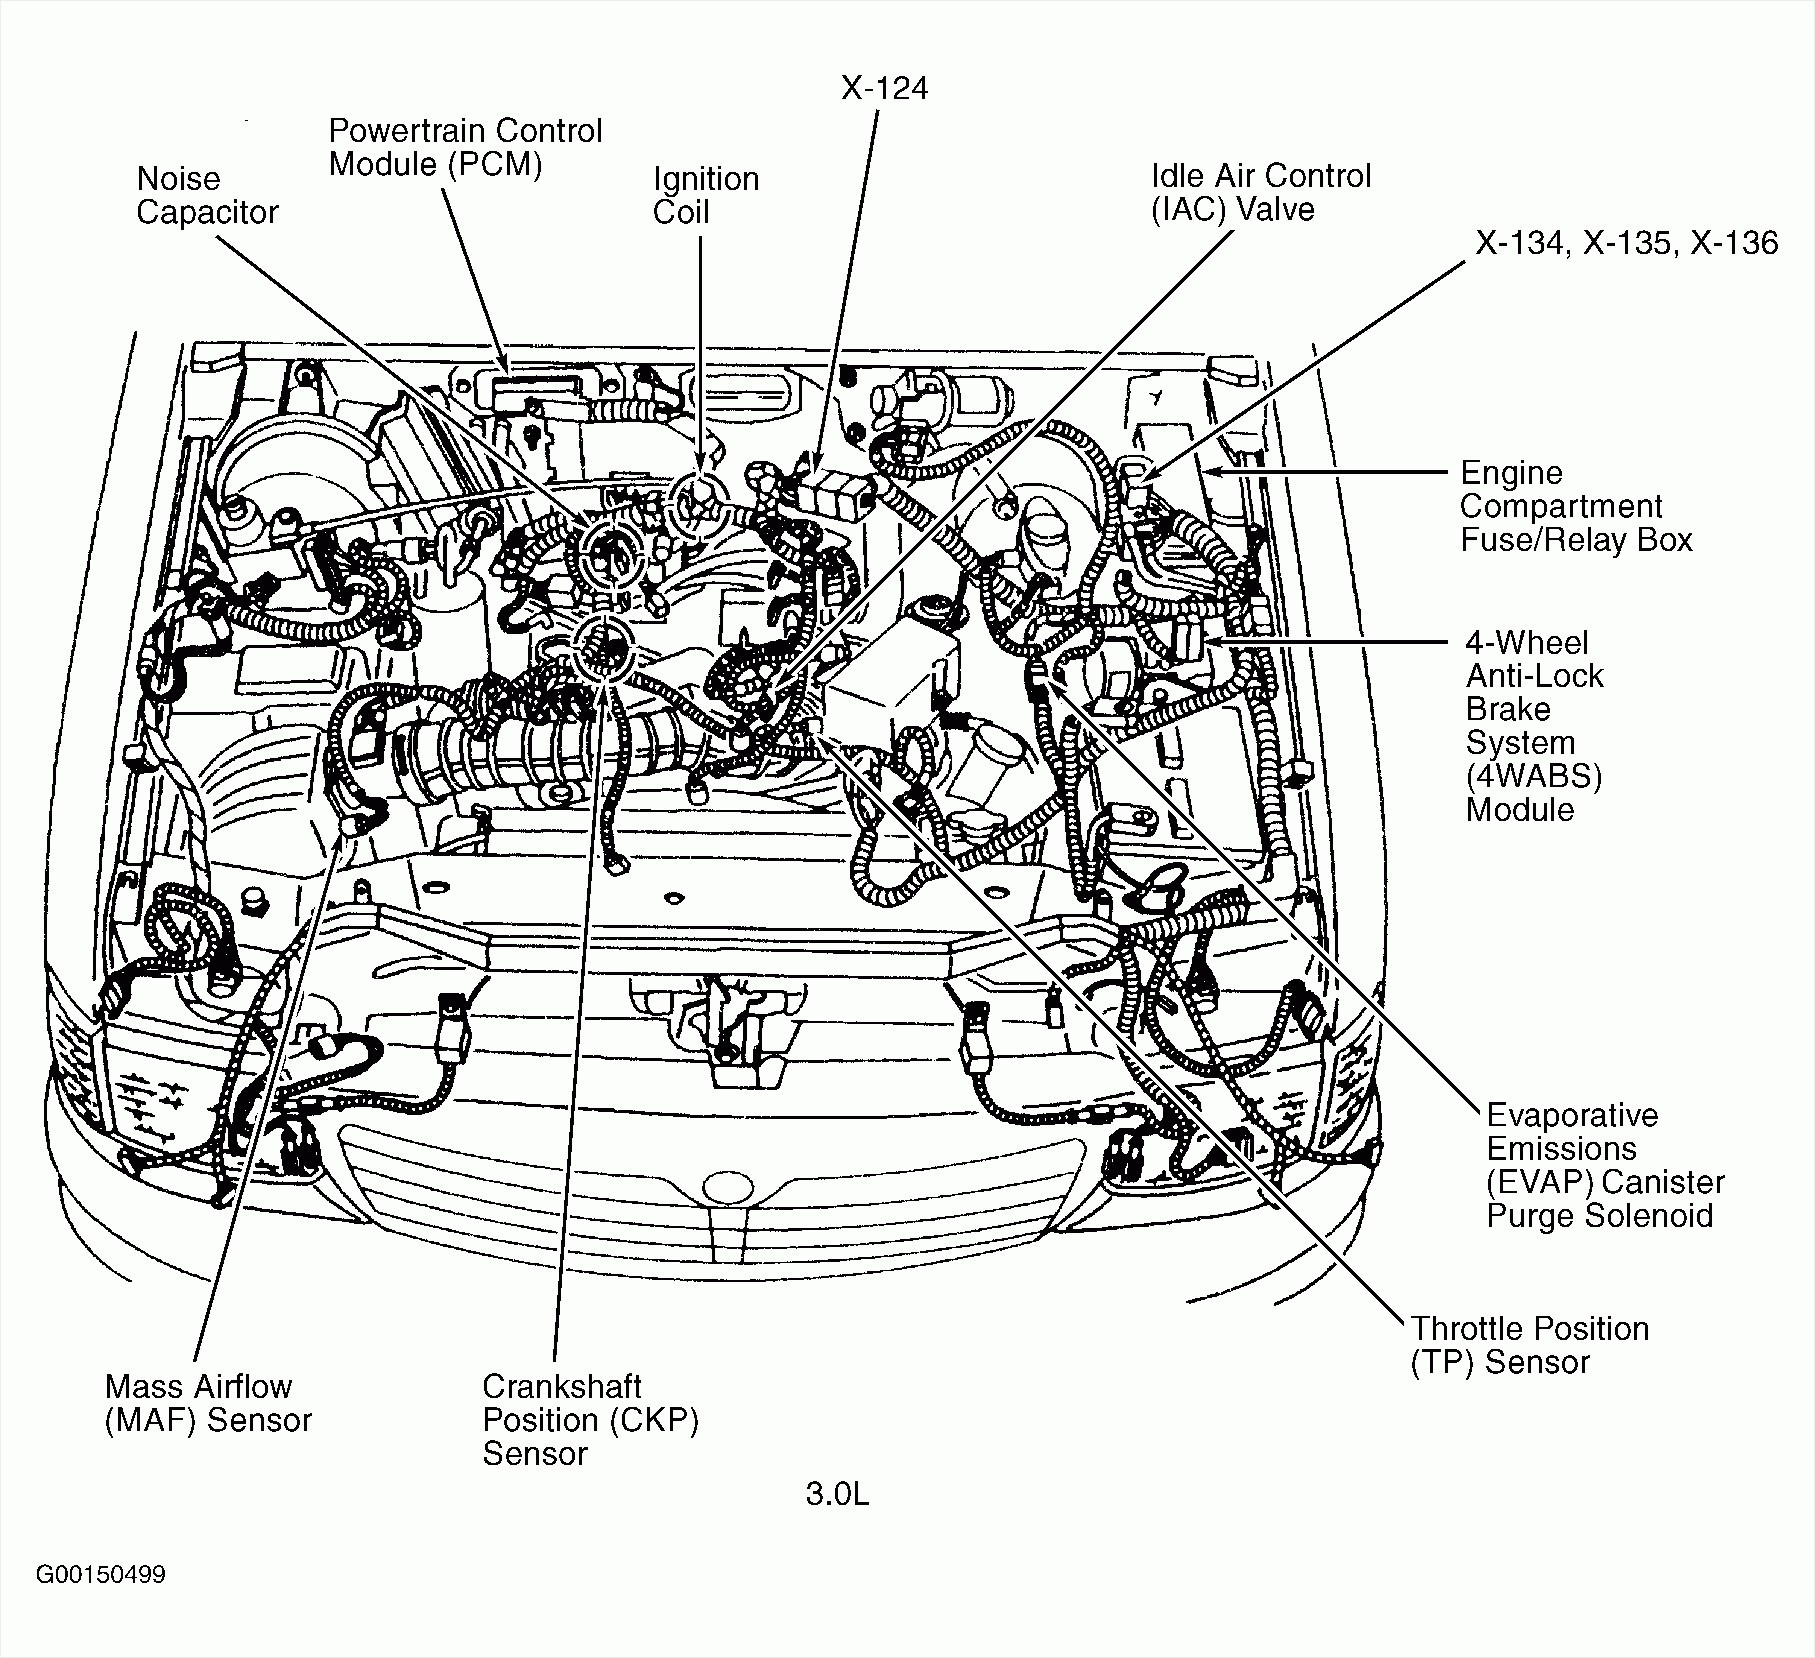 Mazda 6 Wiring Diagram 2006 - Wiring Diagram Img on